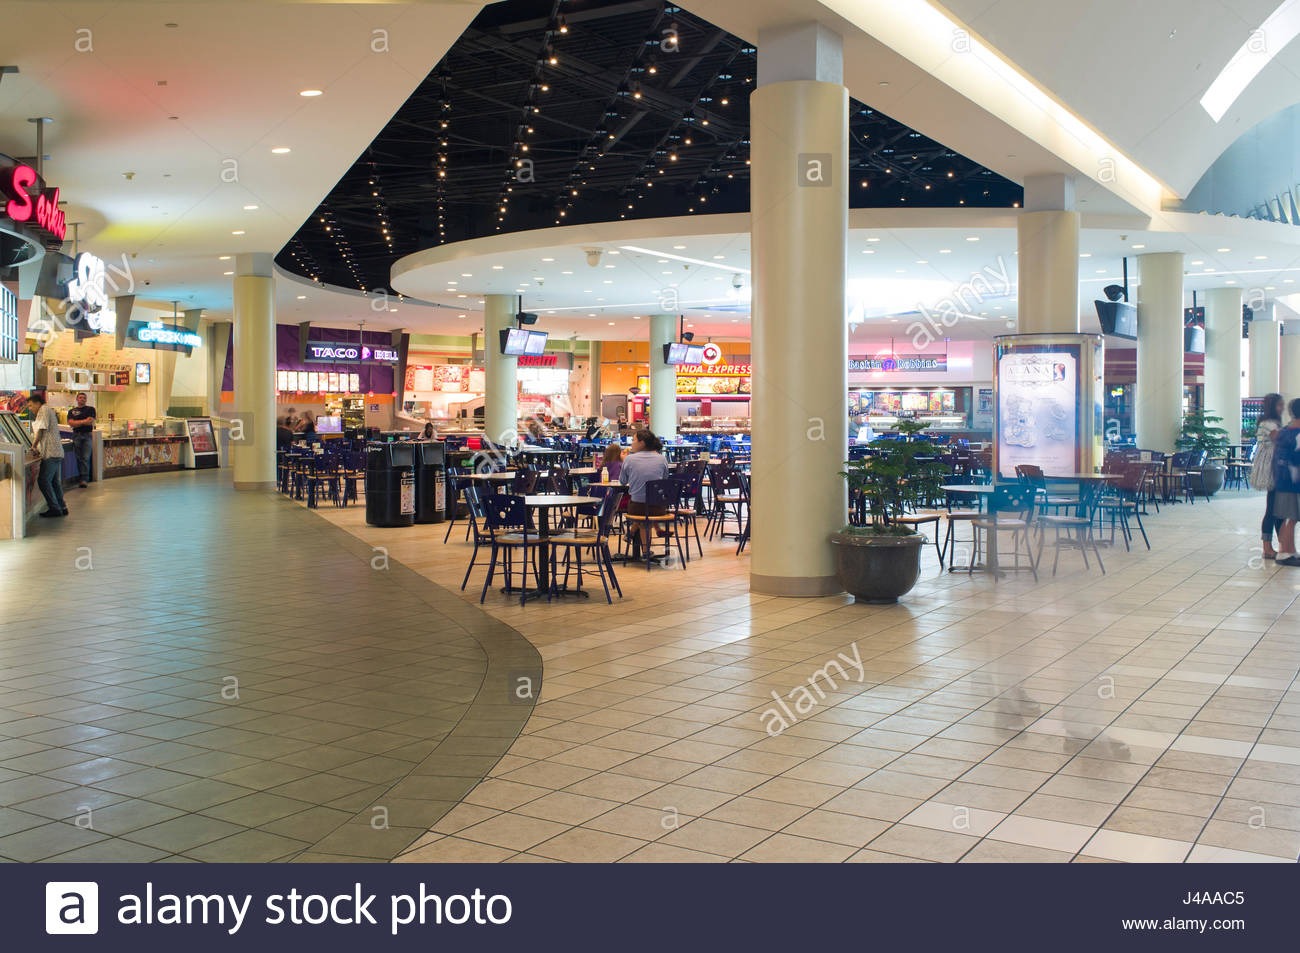 Food Court in Northgate Mall, 401 NE Northgate Way, Seattle